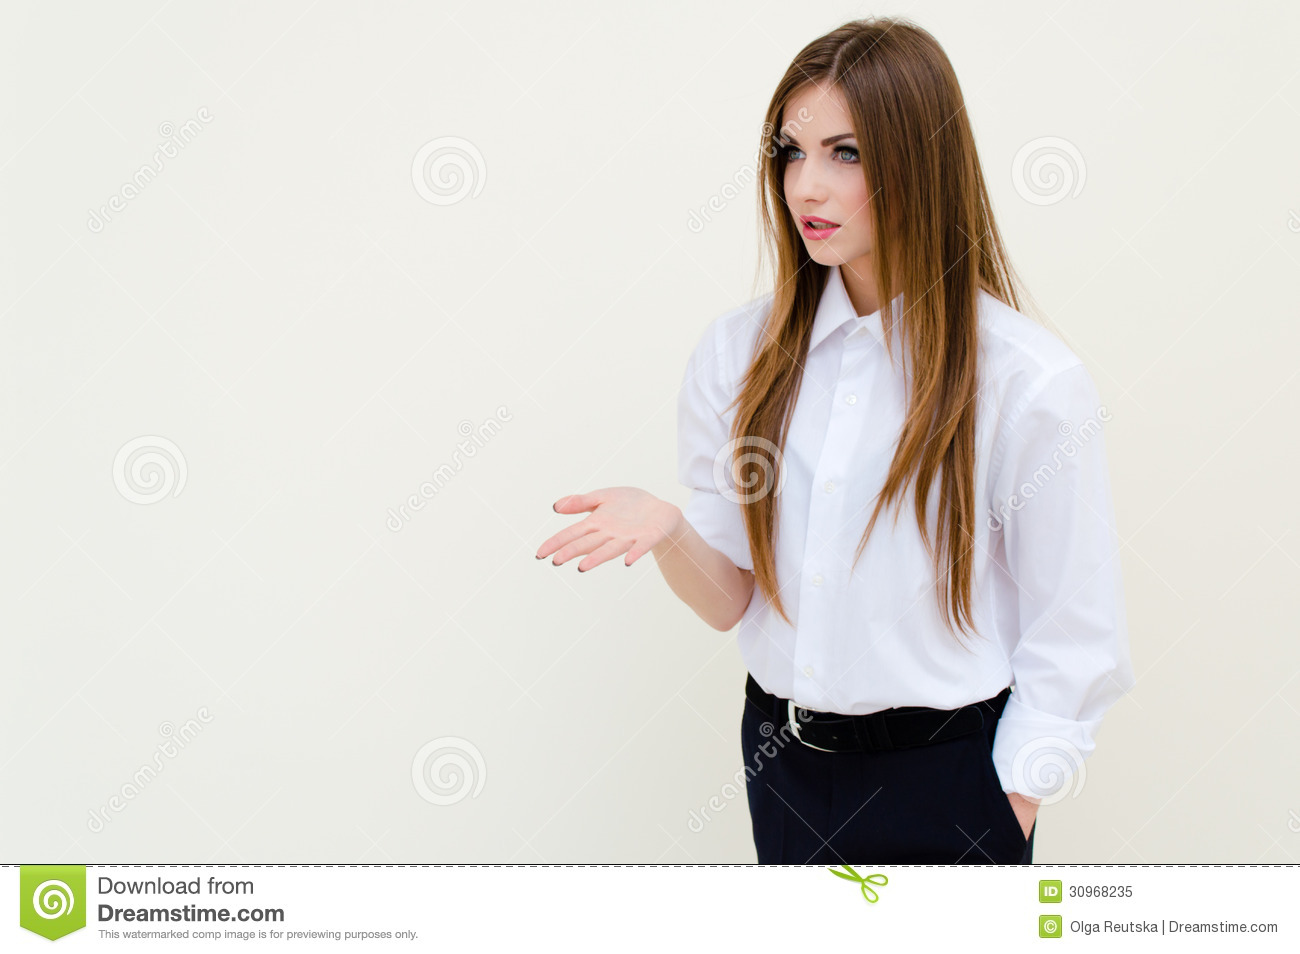 young-business-woman-wearing-man-s-shirt-presenting-copyspace-portrait-lady-showing-30968235.jpg